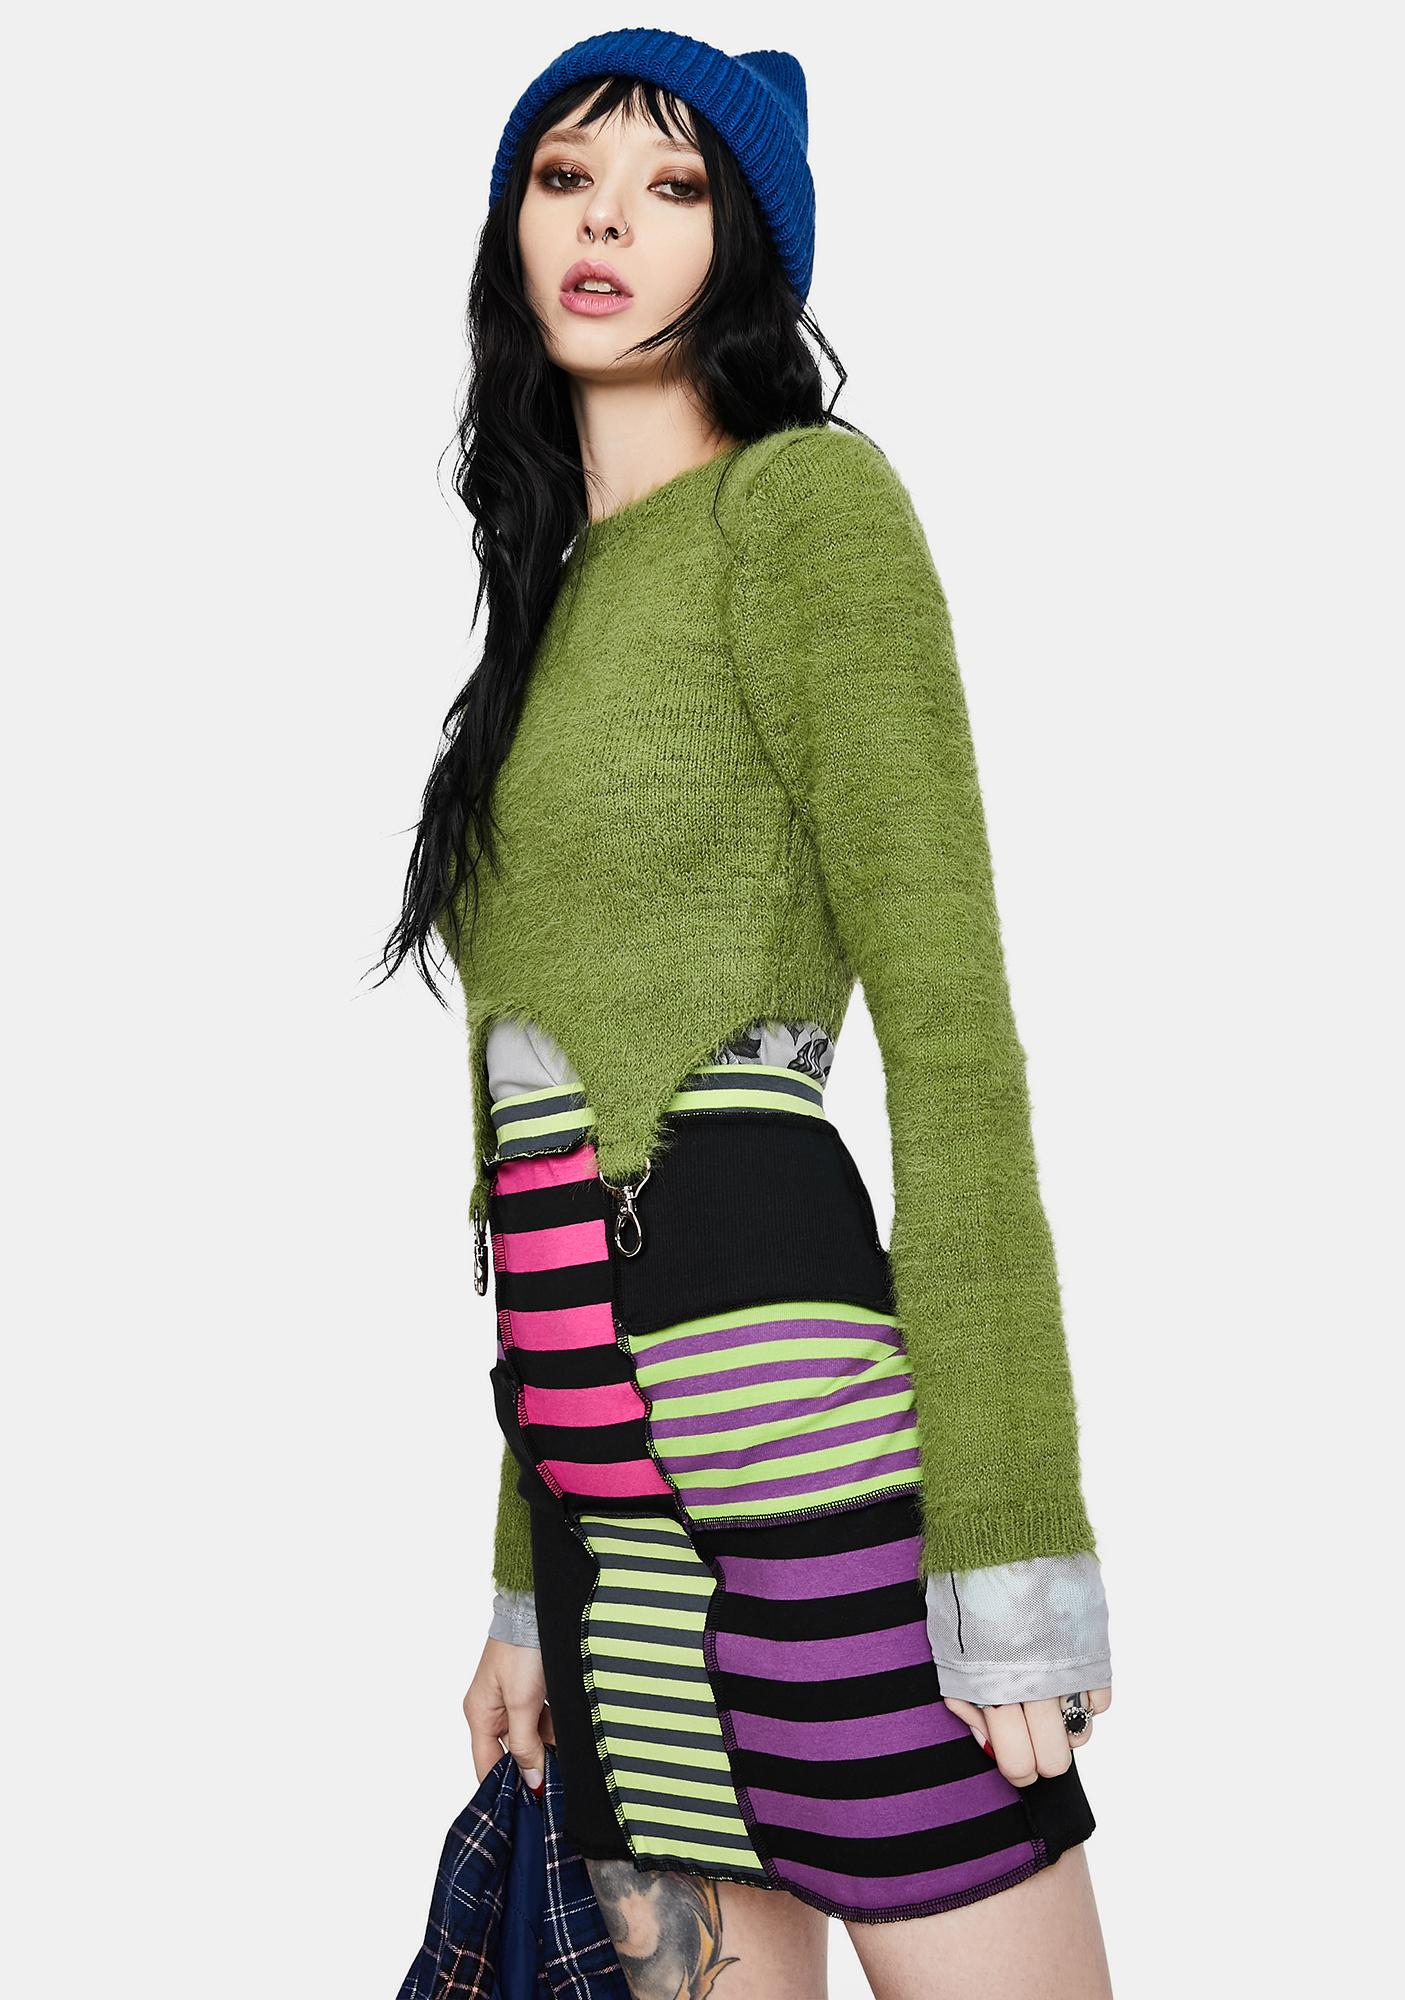 The Ragged Priest Damage Striped Patchwork Skirt